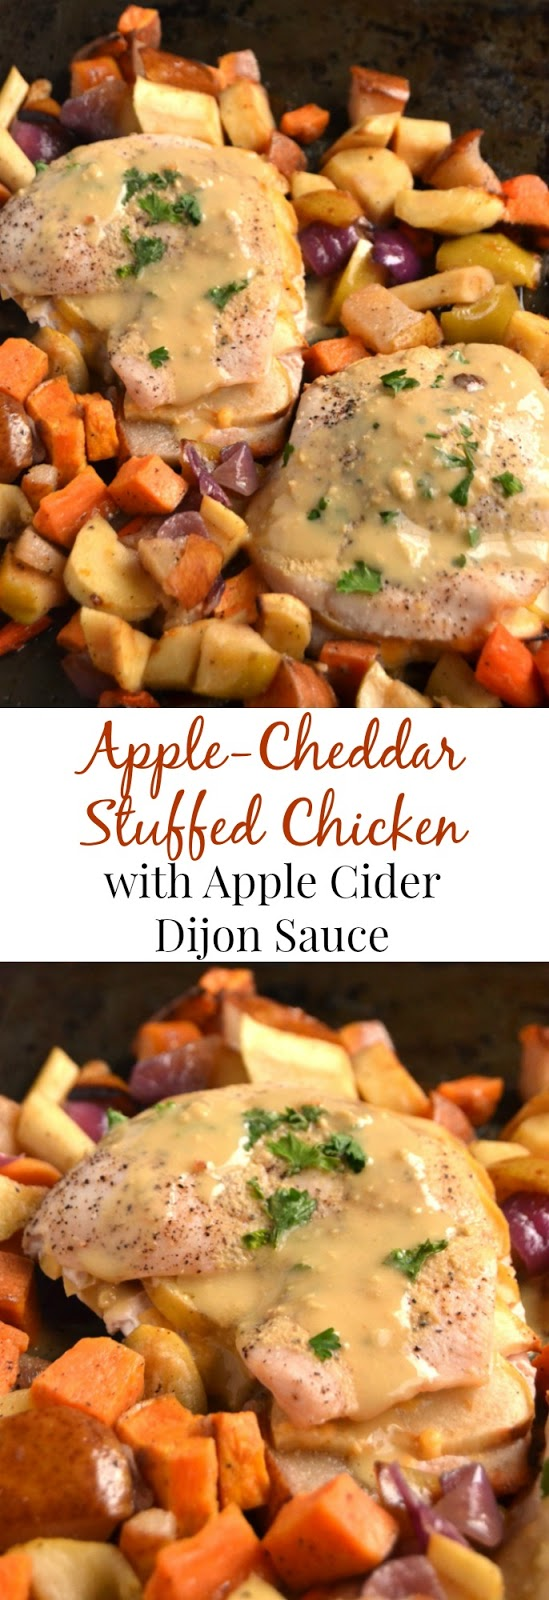 Apple-Cheddar Stuffed Chicken with Apple Cider-Dijon Sauce is ready in just 30 minutes and is bursting with flavor. The mix of sweet, tangy and creamy flavors makes the perfect combination. www.nutritionistreviews.com